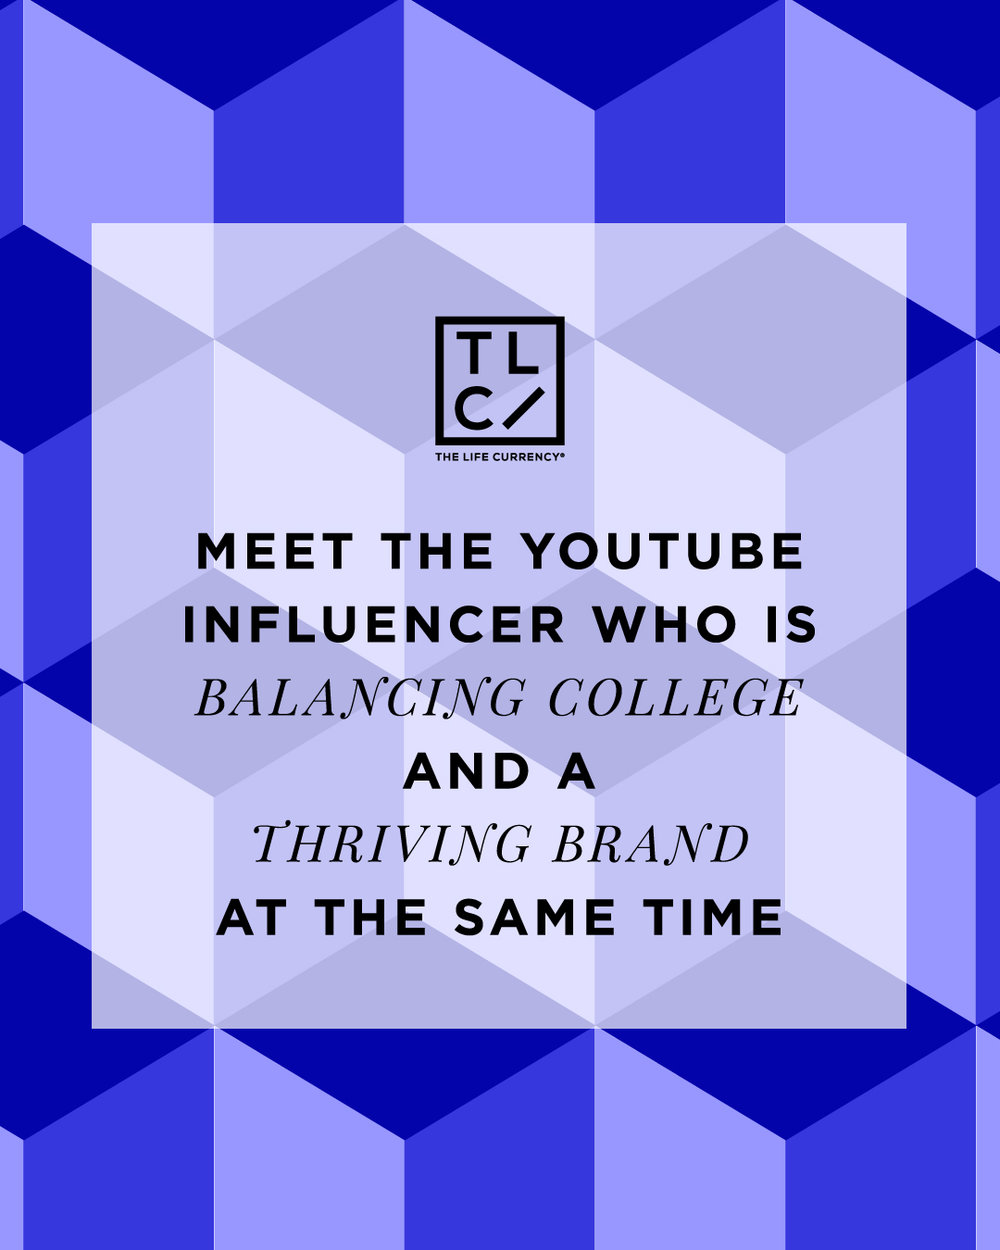 Meet the Youtube Influencer Who Is Balancing College and a Thriving Brand at the Same Time